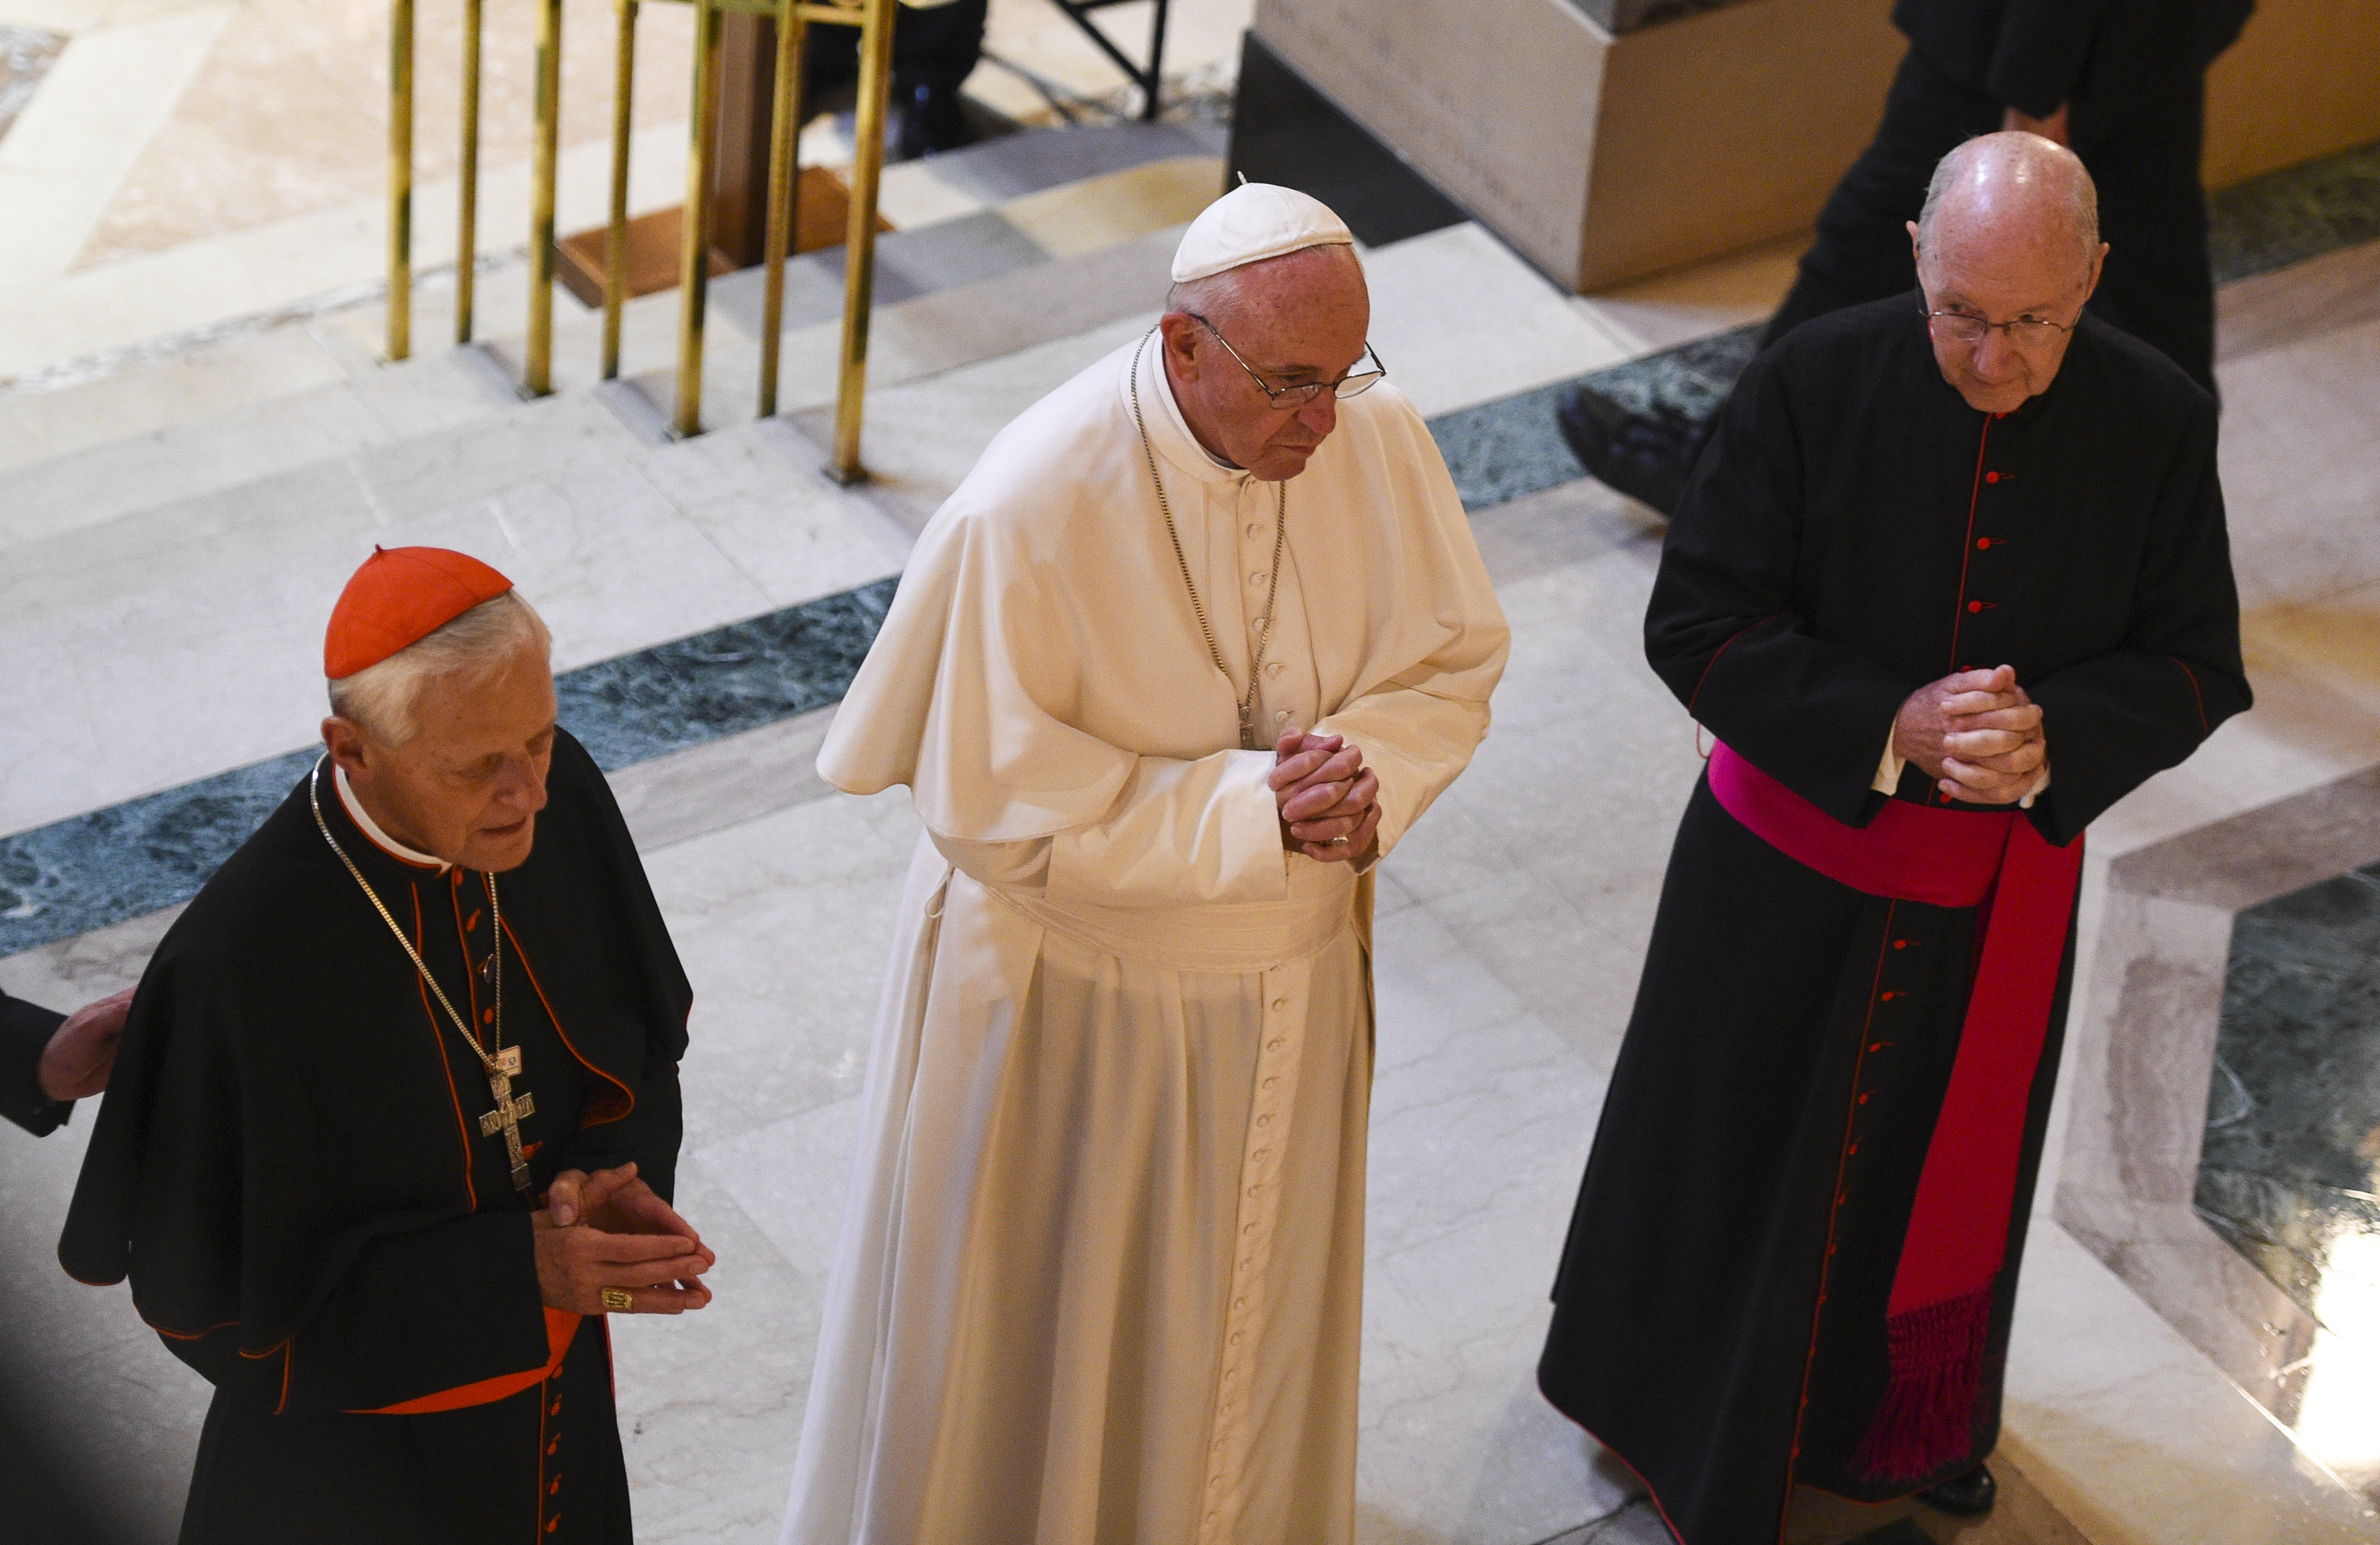 WASHINGTON, D.C. - SEPTEMBER 23: Pope Francis prays with Cardinal Donald W. Wuerl (L), archbishop of Washington and Msgr. W. Ronald Jameson at the Blessed Sacrament Chapel during the Midday Prayer of the Divine with more than 300 U.S. Bishops at the Cathedral of St. Matthew the Apostle on September 23, 2015 in Washington, DC. The pope began his first trip to the U.S. at the White House and continues on in Washington tomorrow, making an address to a joint meeting of U.S. Congress. (Photo by Jonathan Newton-Pool/Getty Images)